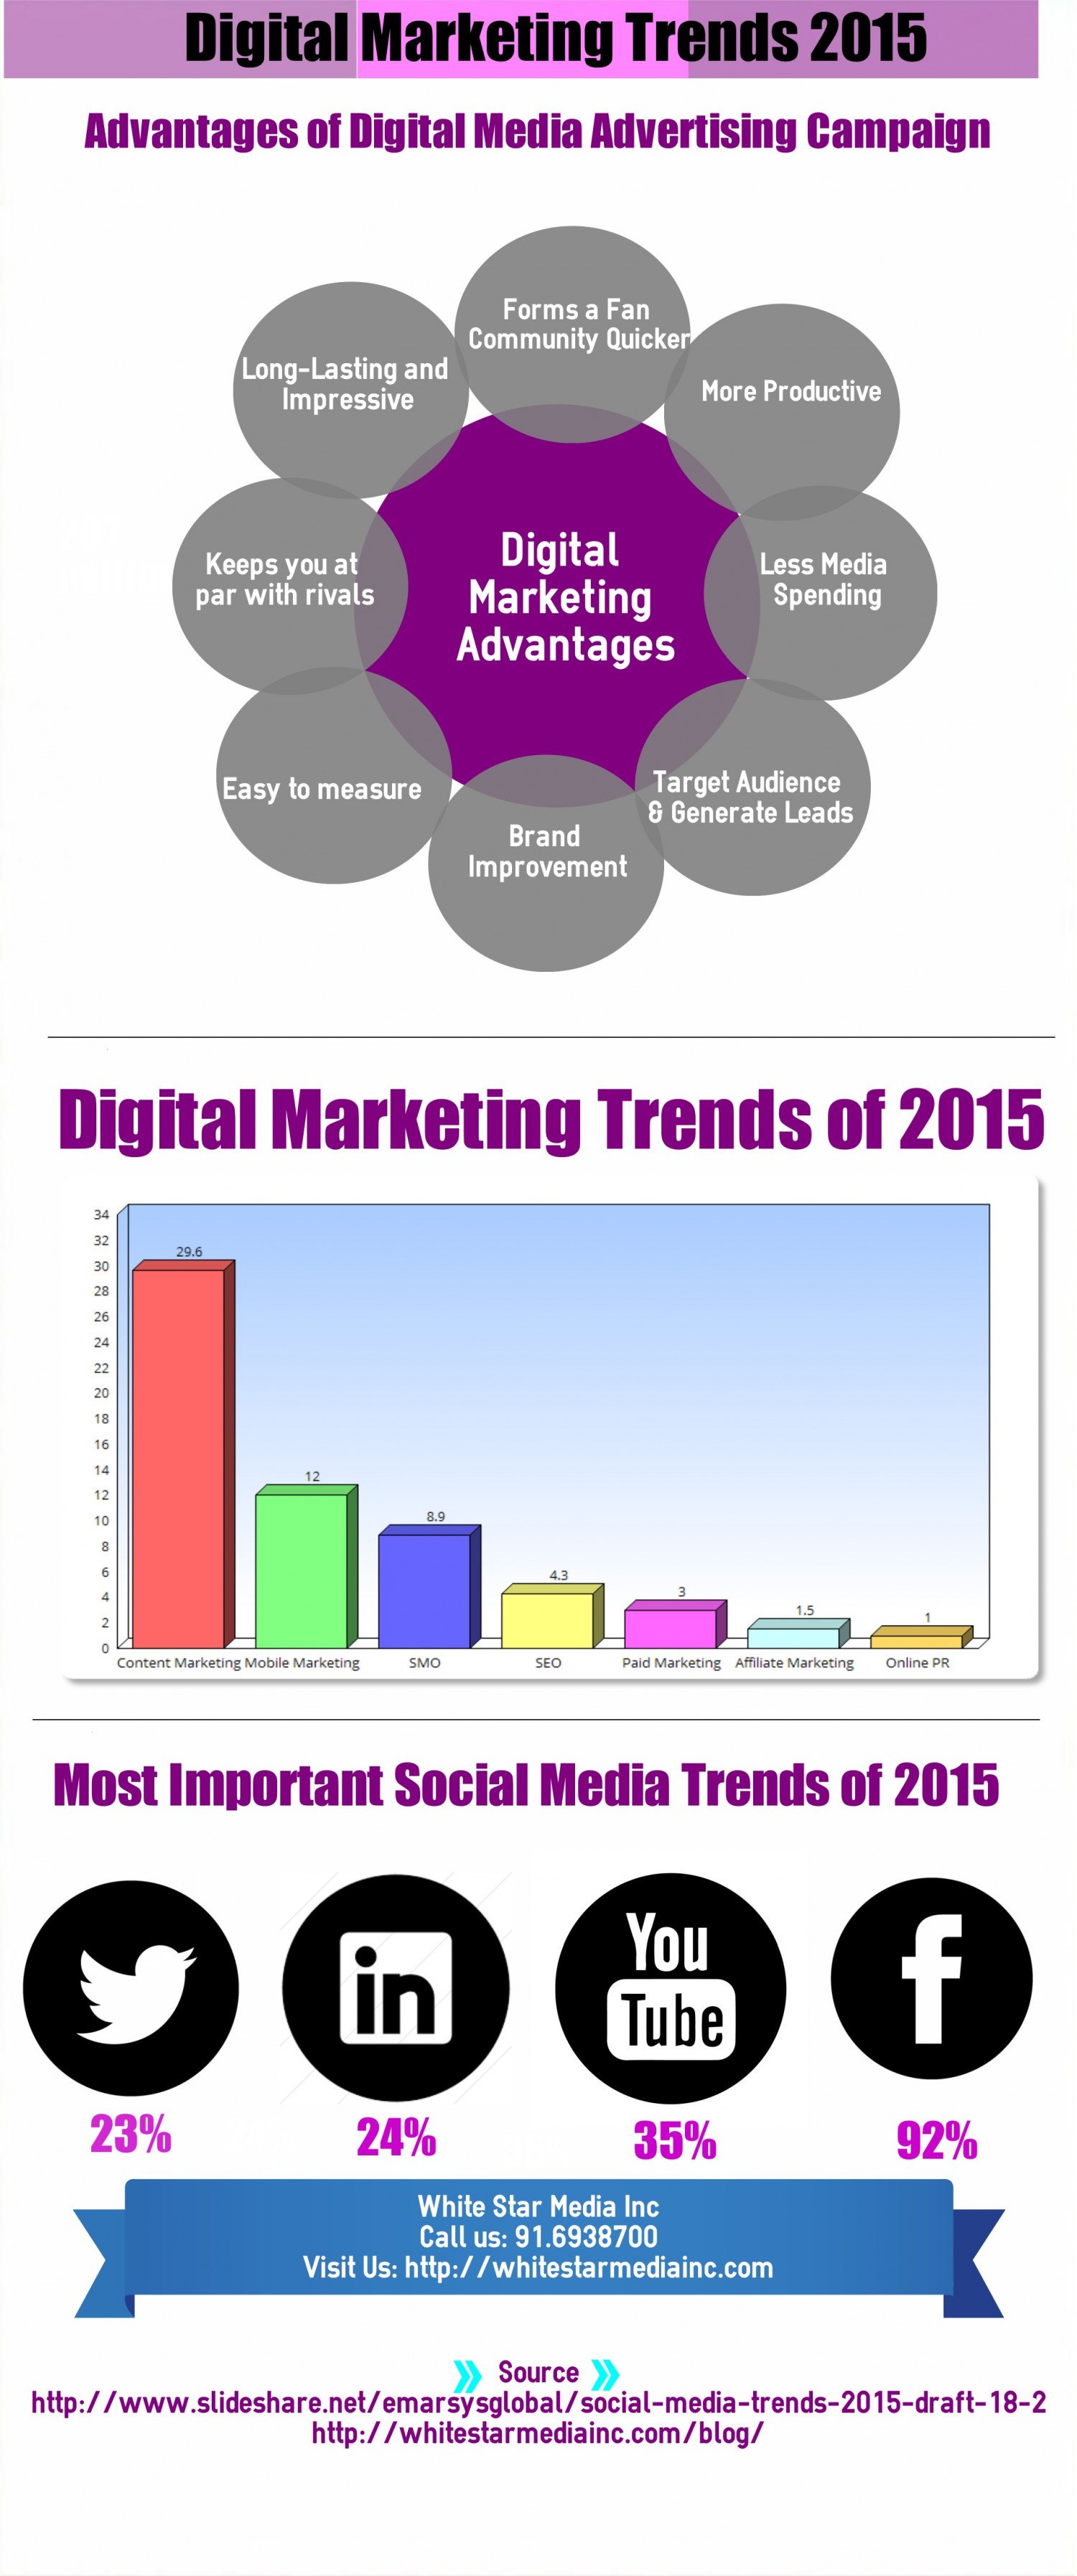 Digital Media Marketing Trends of 2015